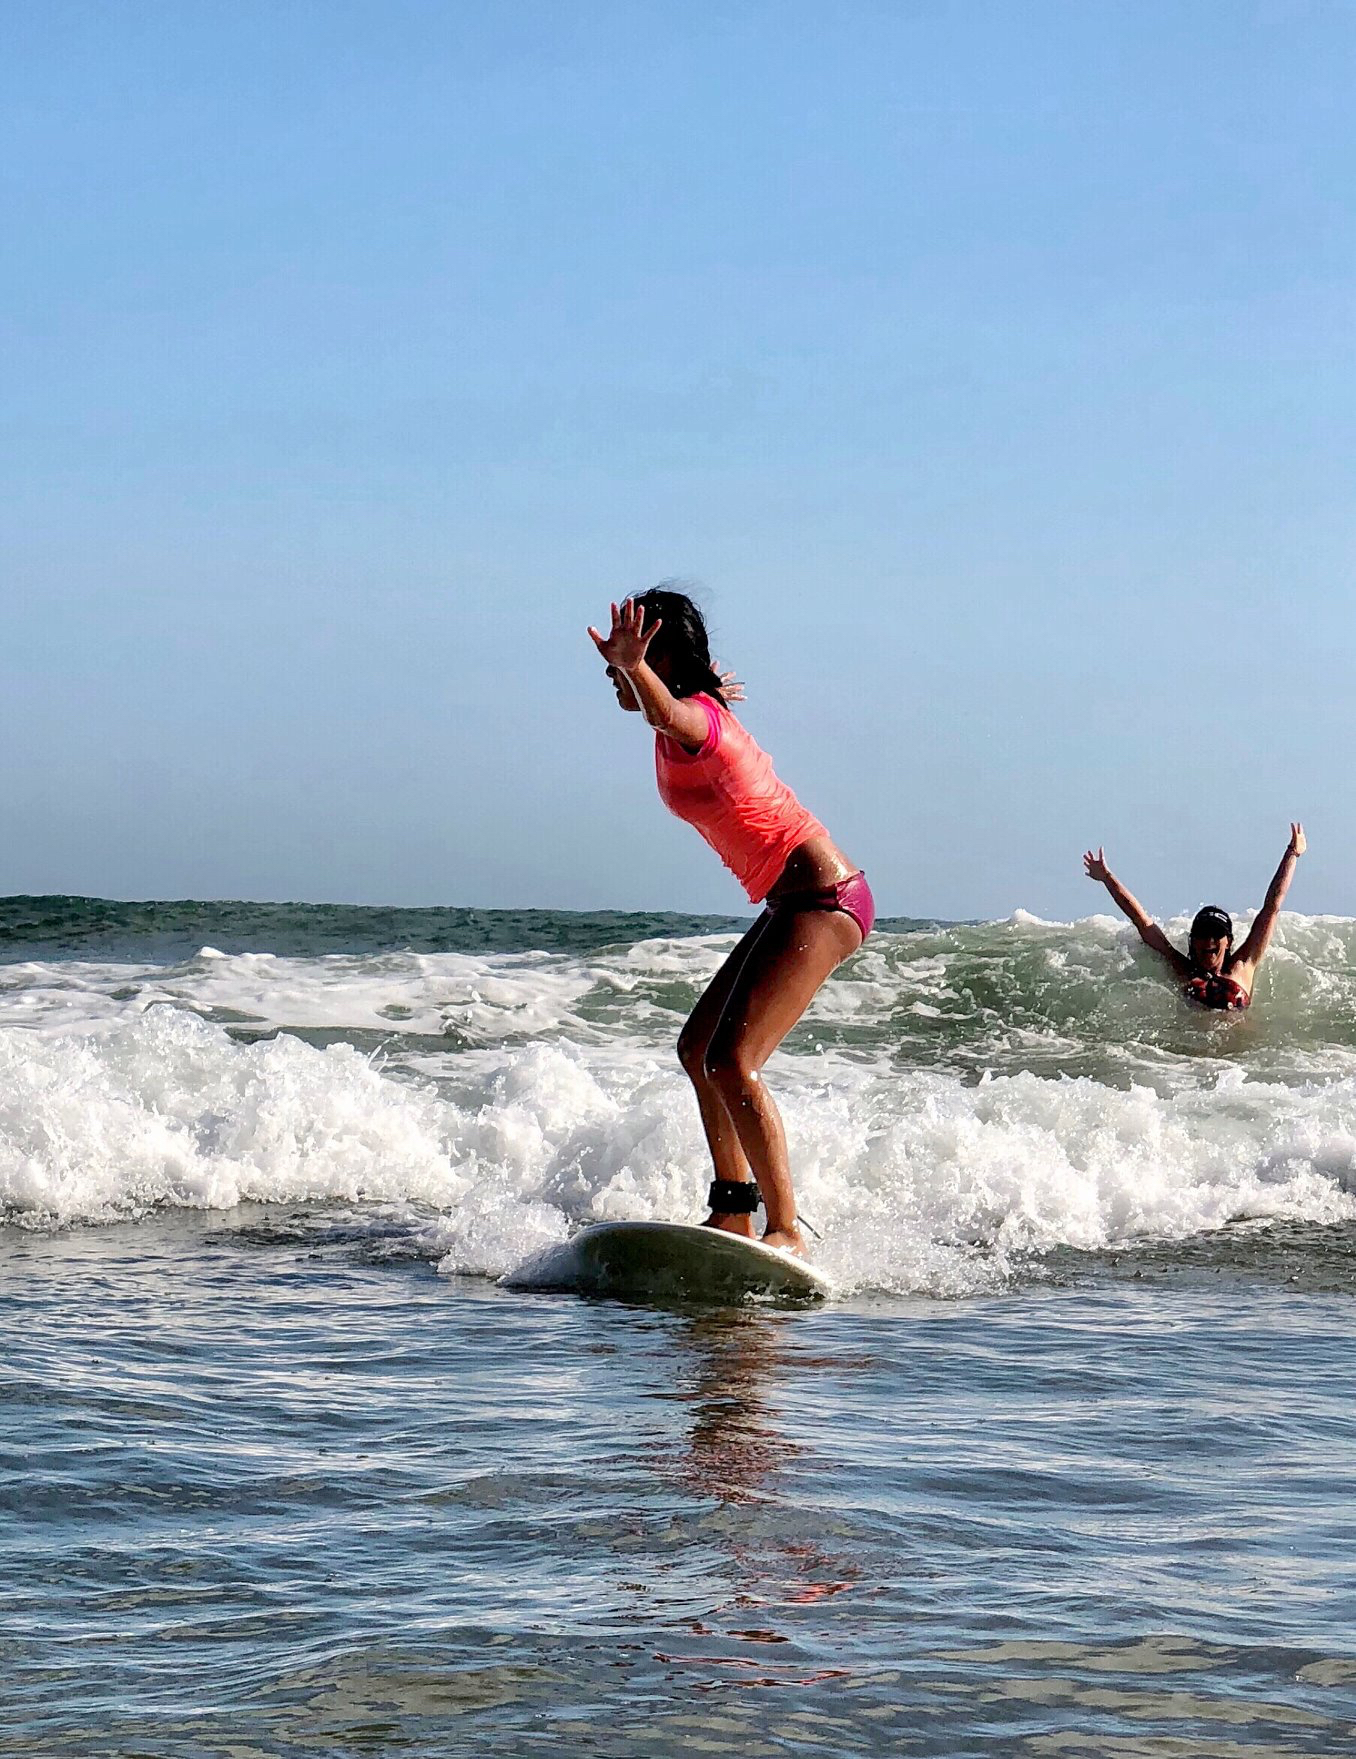 My daughter Sky's first surf adventure in Nicaragua.